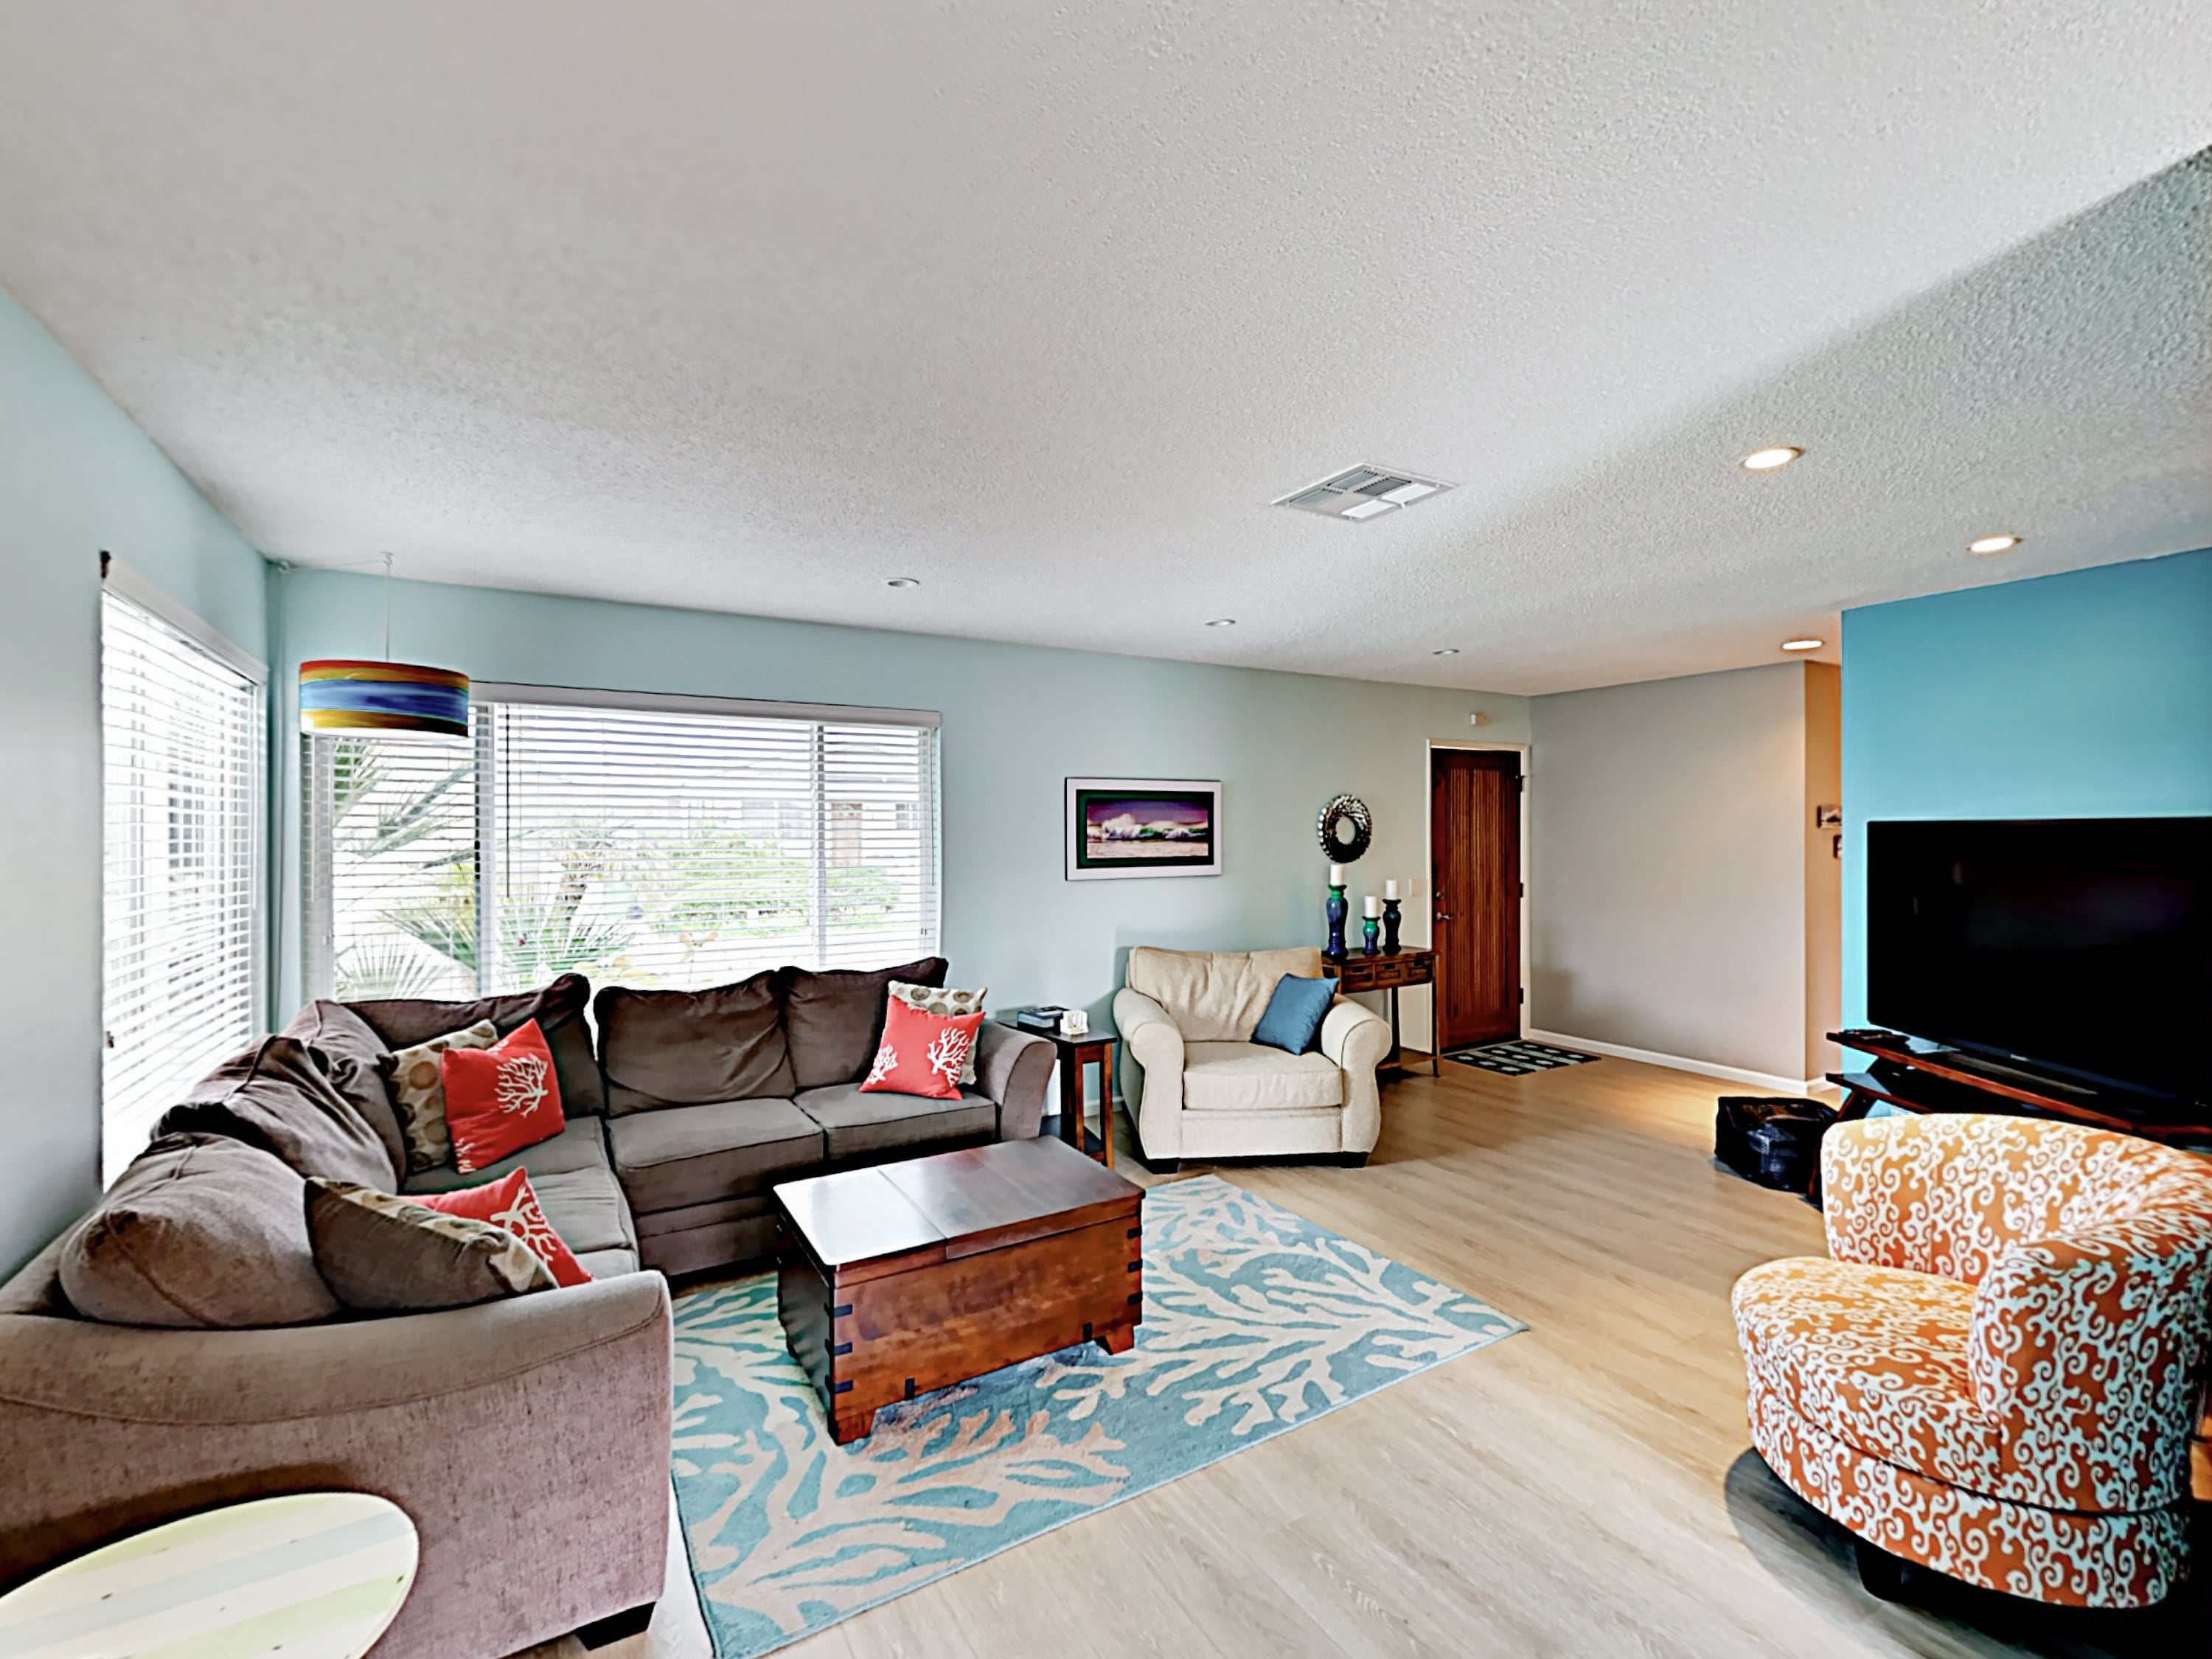 Welcome to Morro Bay! This home is professionally managed by TurnKey Vacation Rentals.